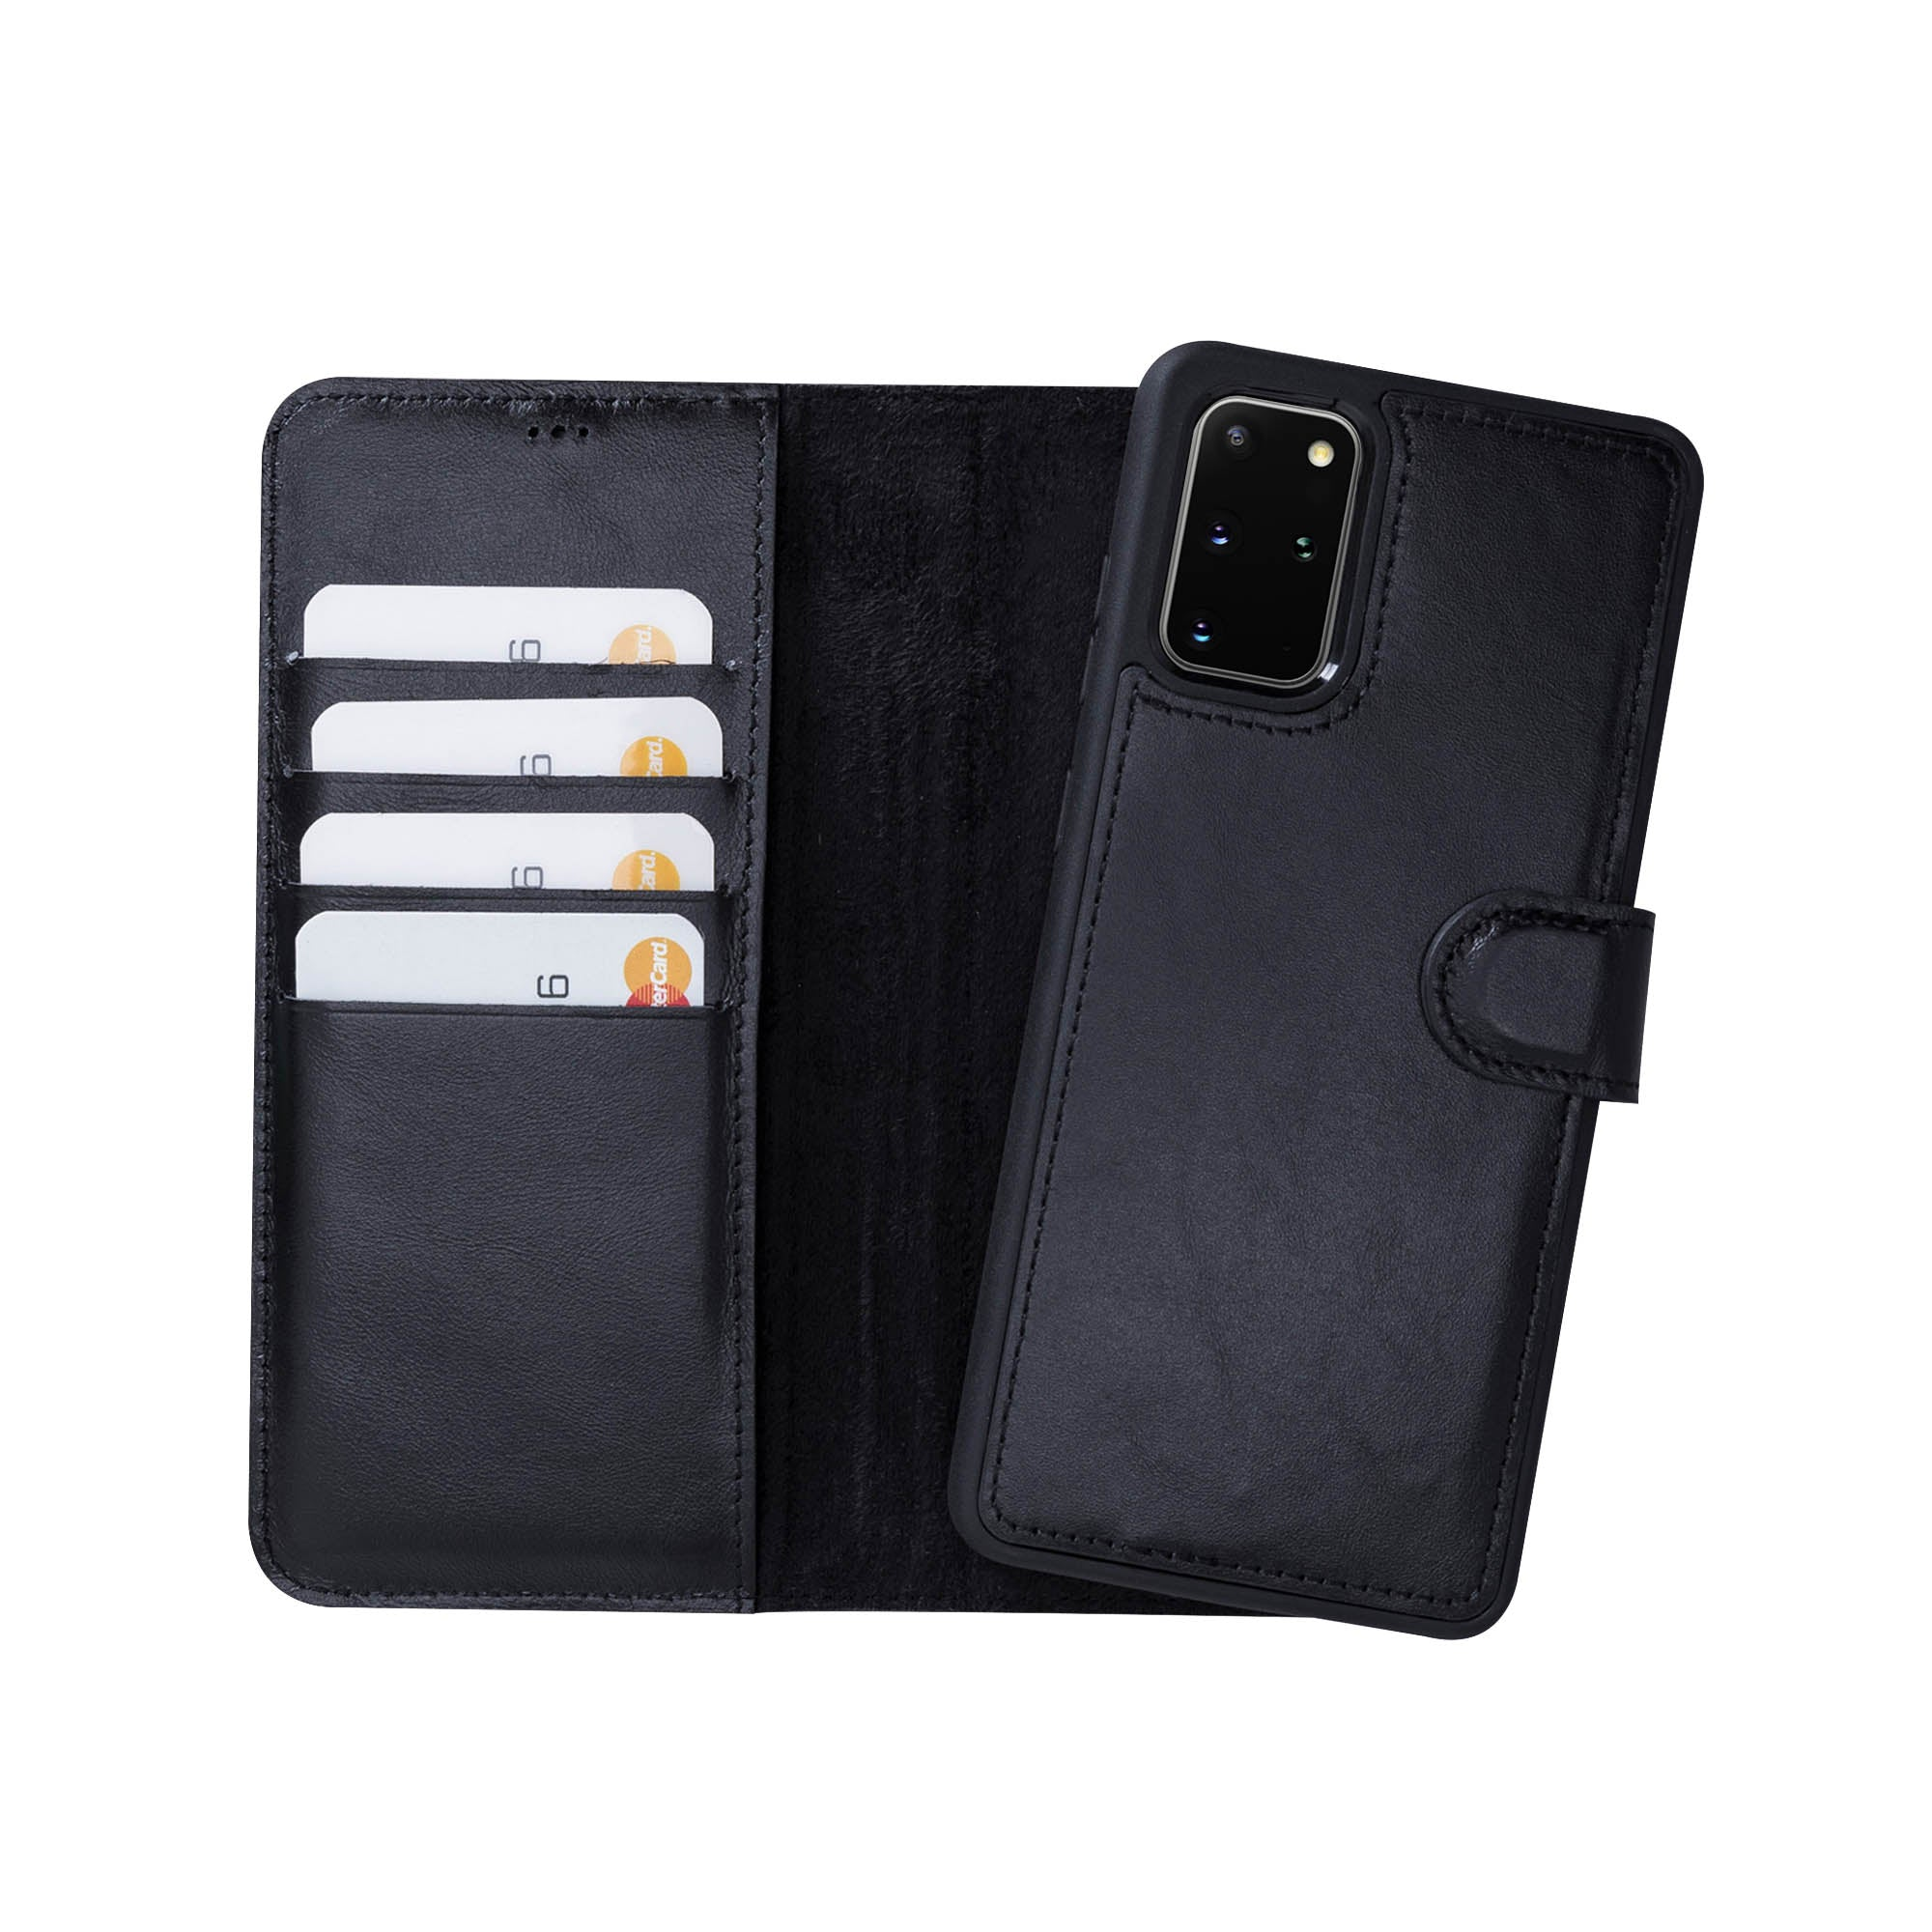 "Magic Magnetic Detachable Leather Wallet Case for Samsung Galaxy S20 Plus (6.7"") - BLACK"